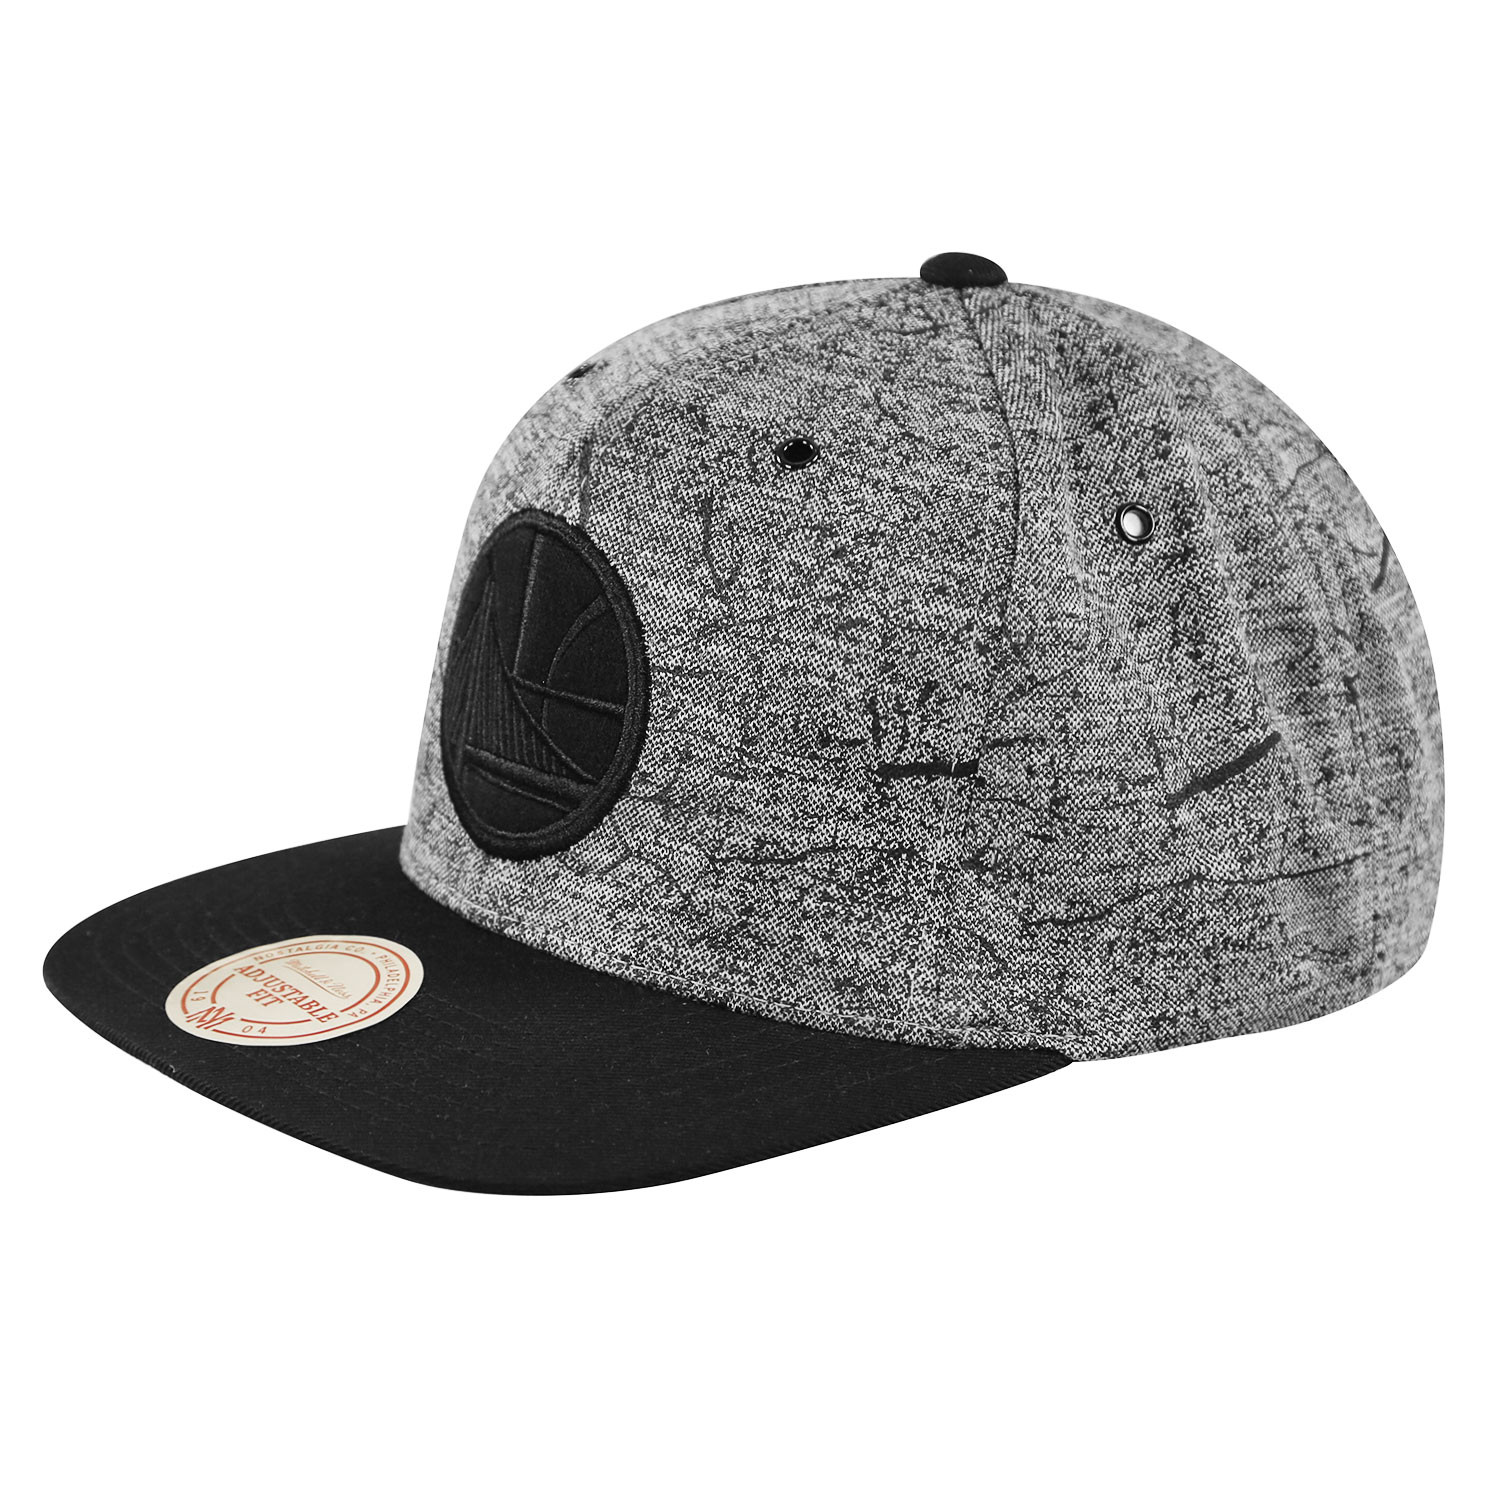 Grounded Casquette Adulte